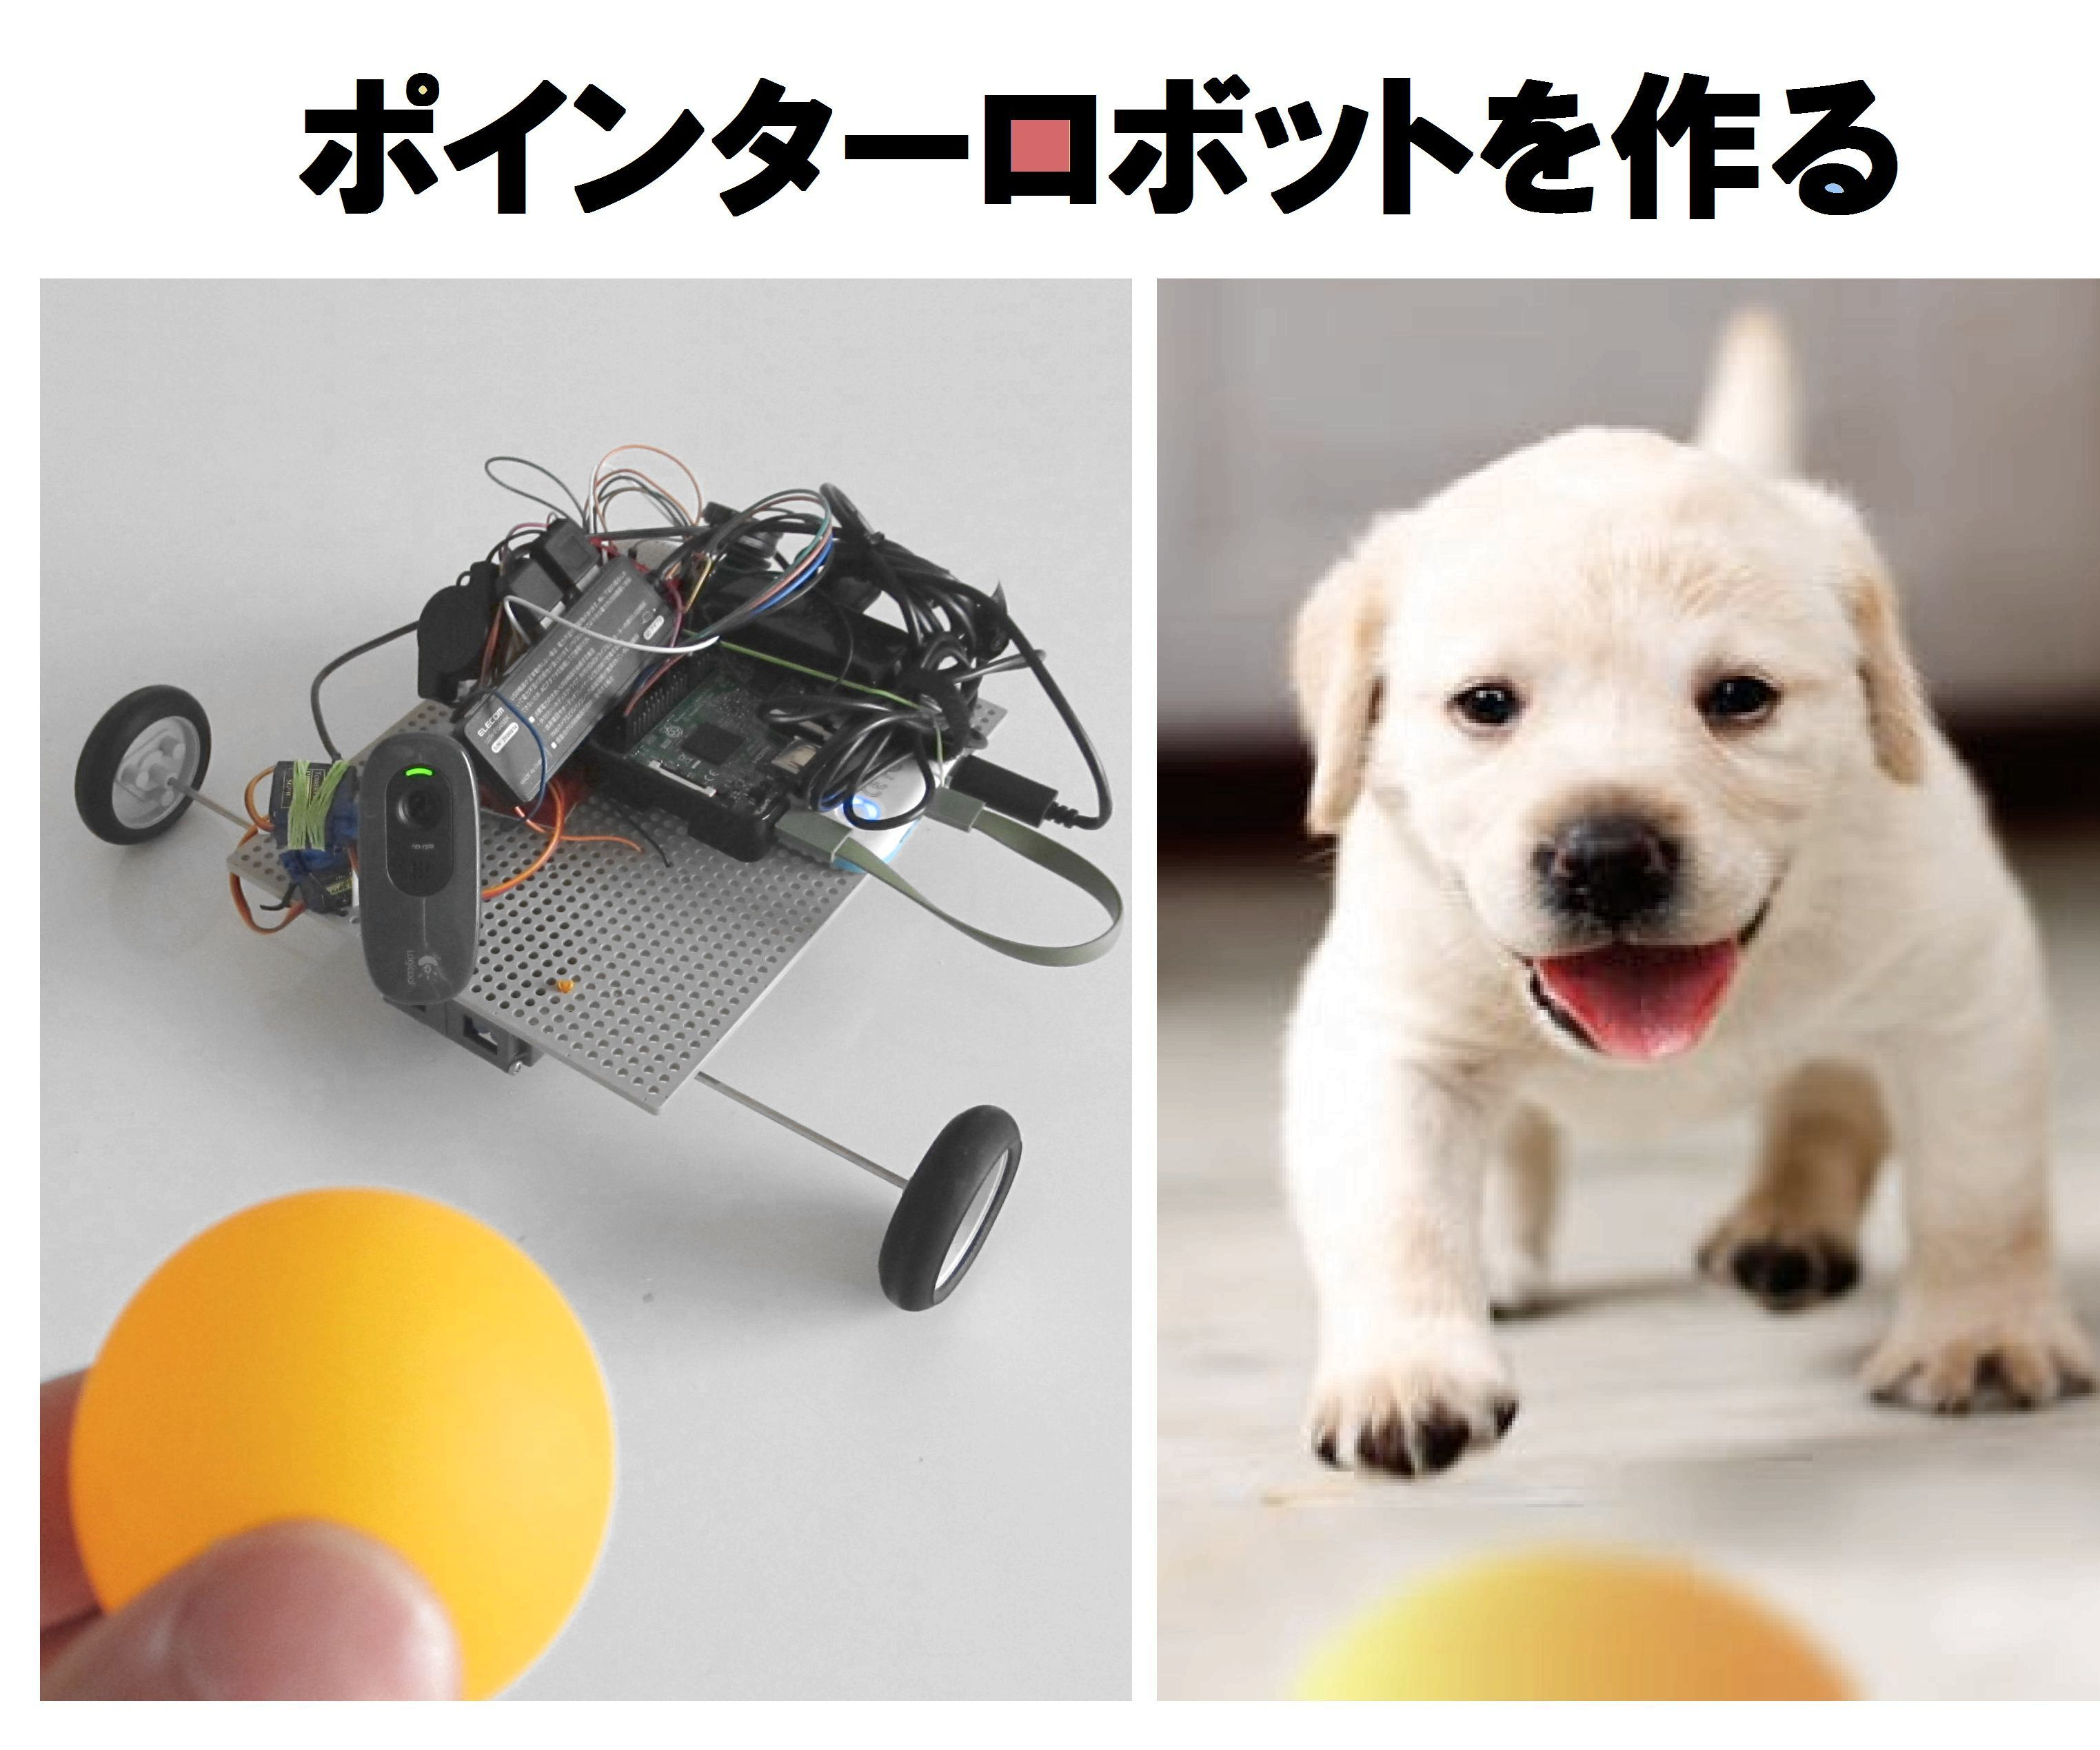 Pointer Robot With RPi and Arduino JPN